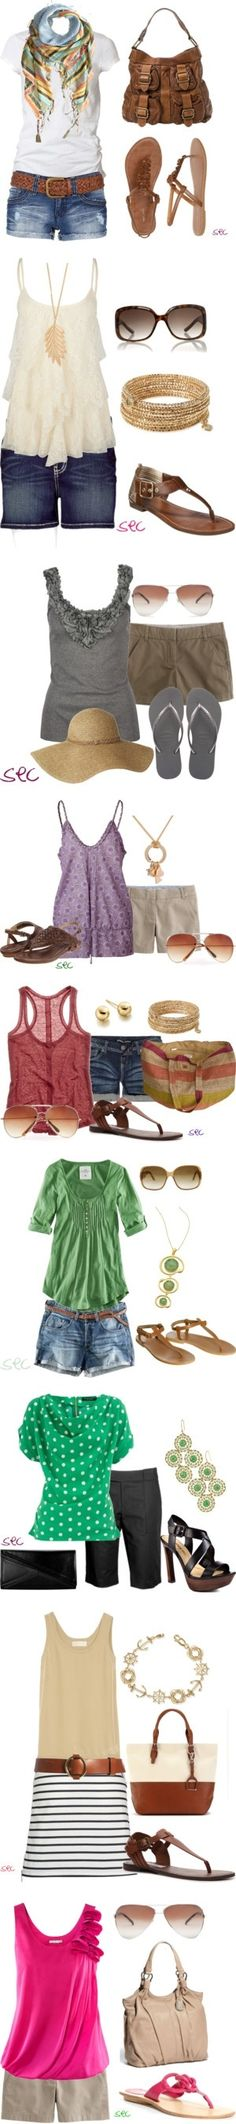 outfits by Katharine1